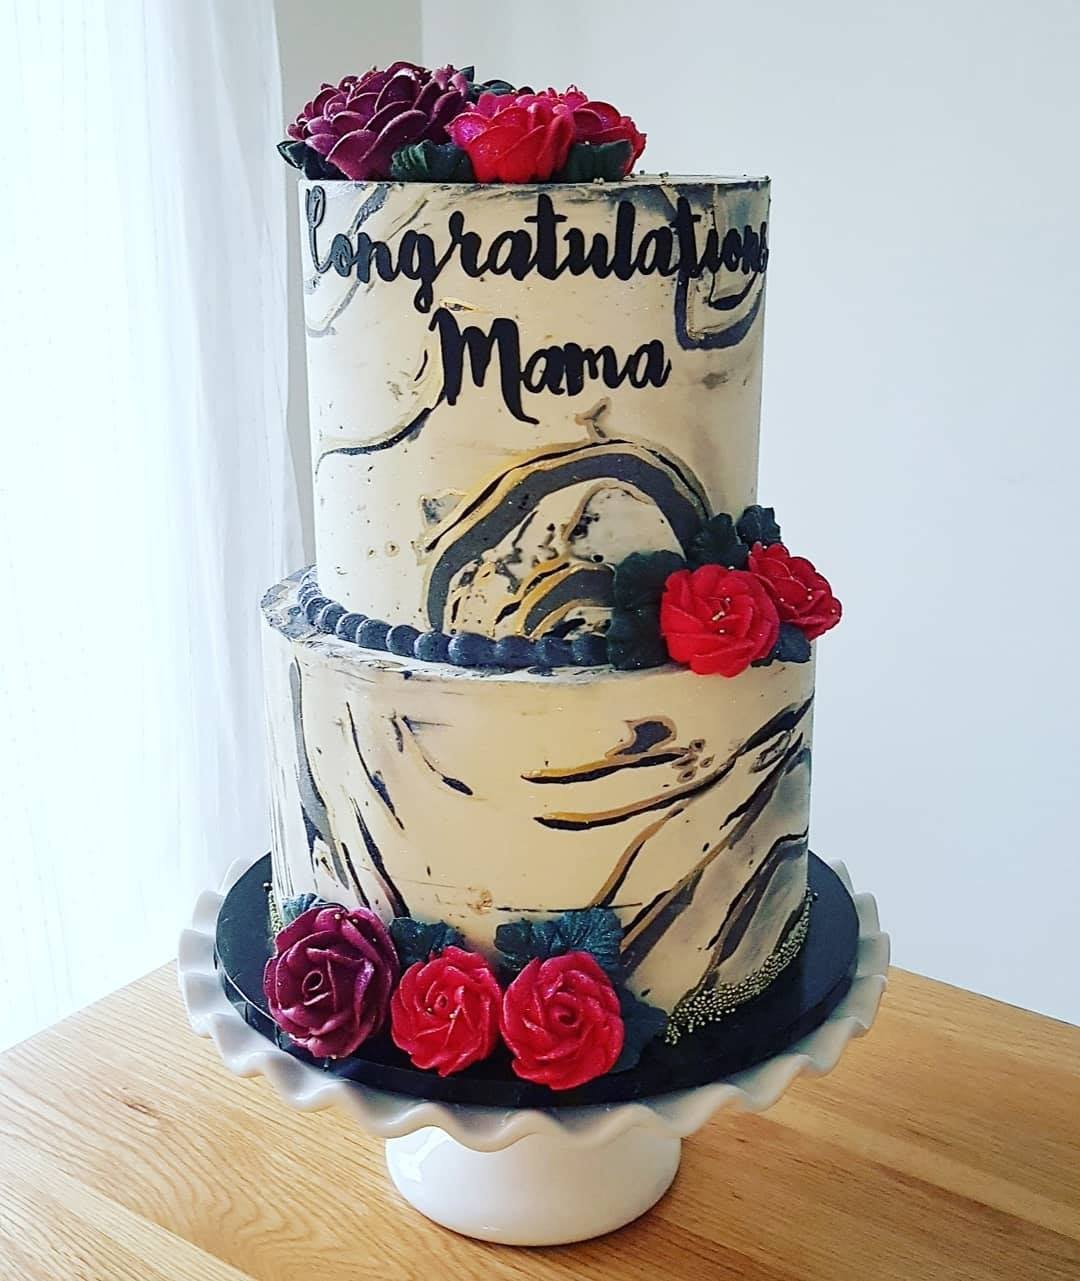 Marble cake with buttercream roses